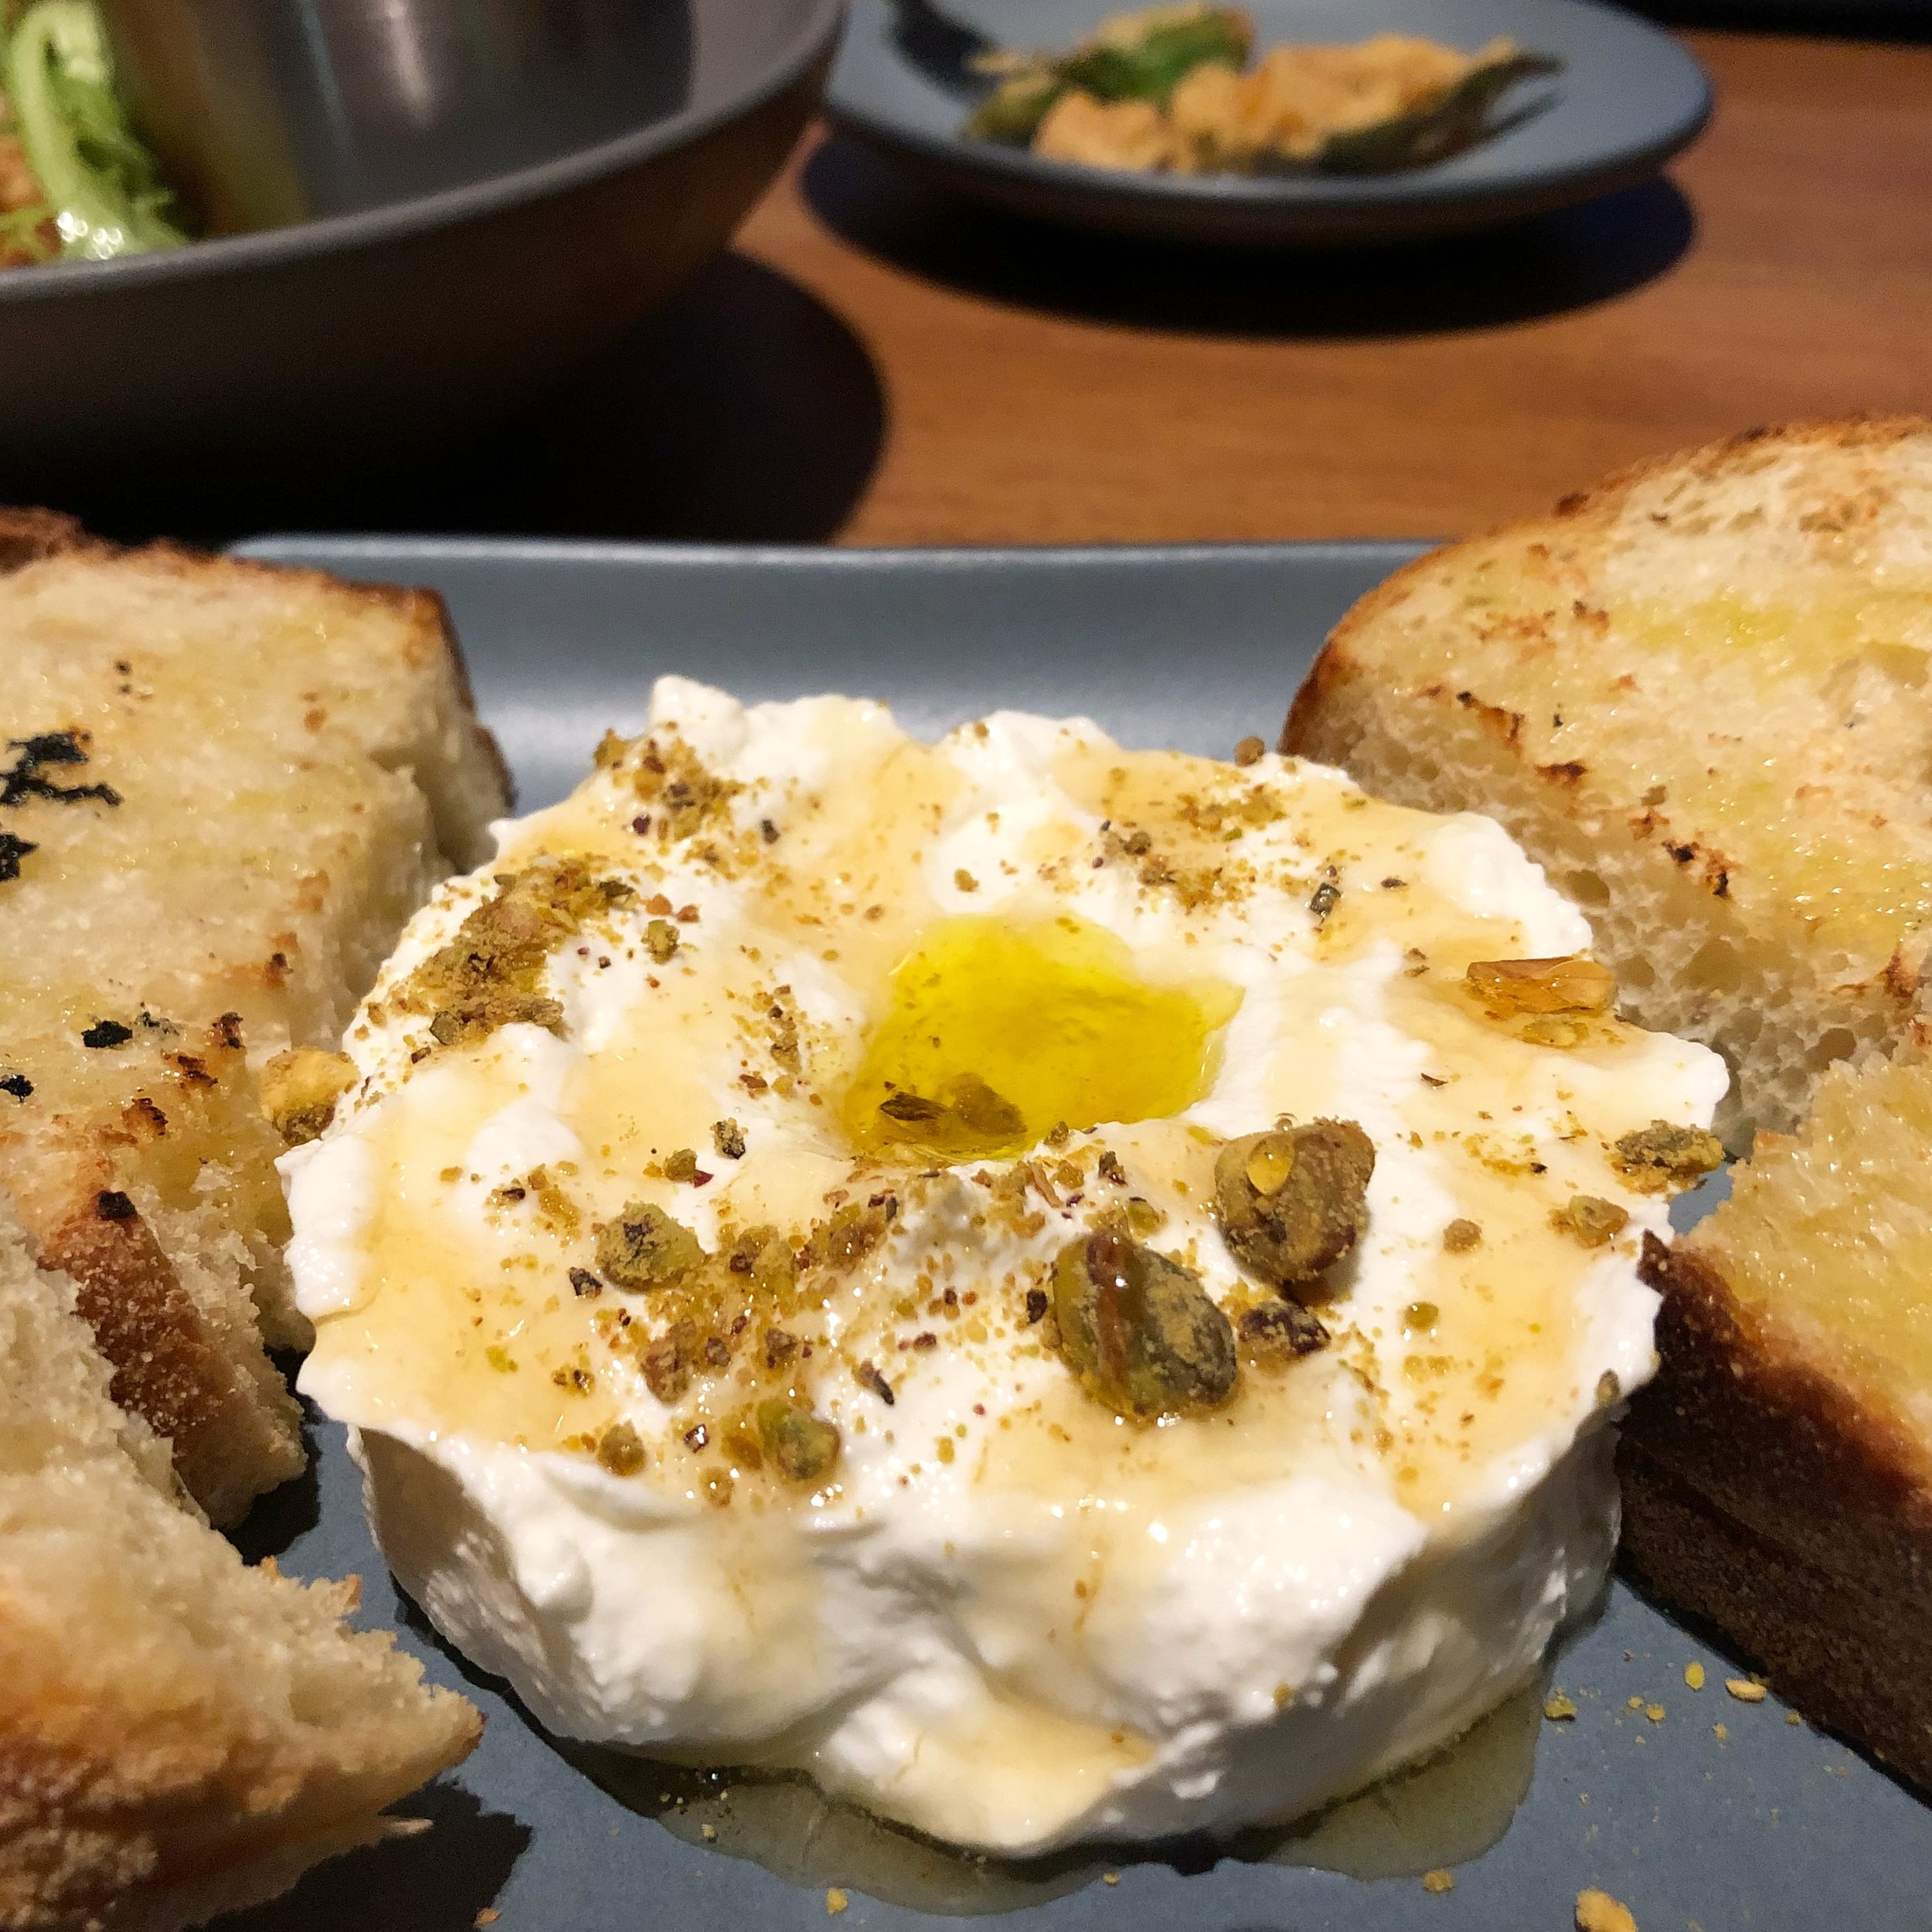 Whipped Ricotta - Sourdough, lavender honey, pistachioThe best appetizer on the menu. You can't come to Angeline's and not order this. You won't be disappointed.